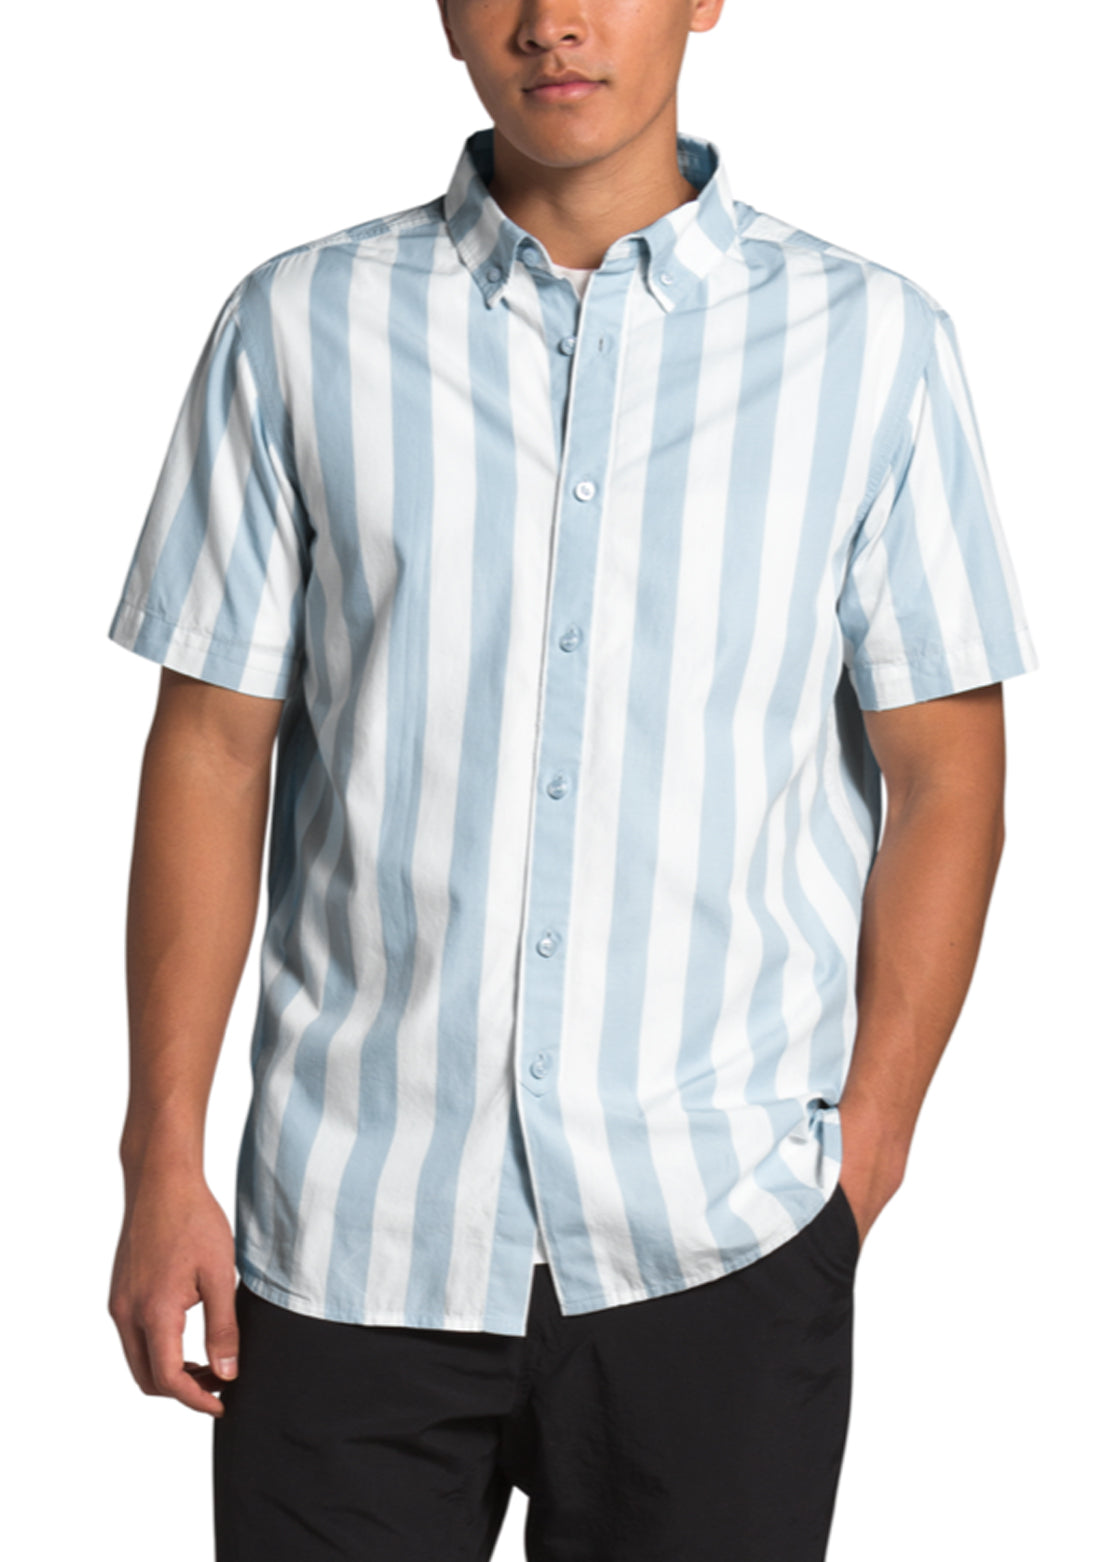 The North Face Men's Monanock II Short Sleeve Shirt Faded Blue Elevation Stripe